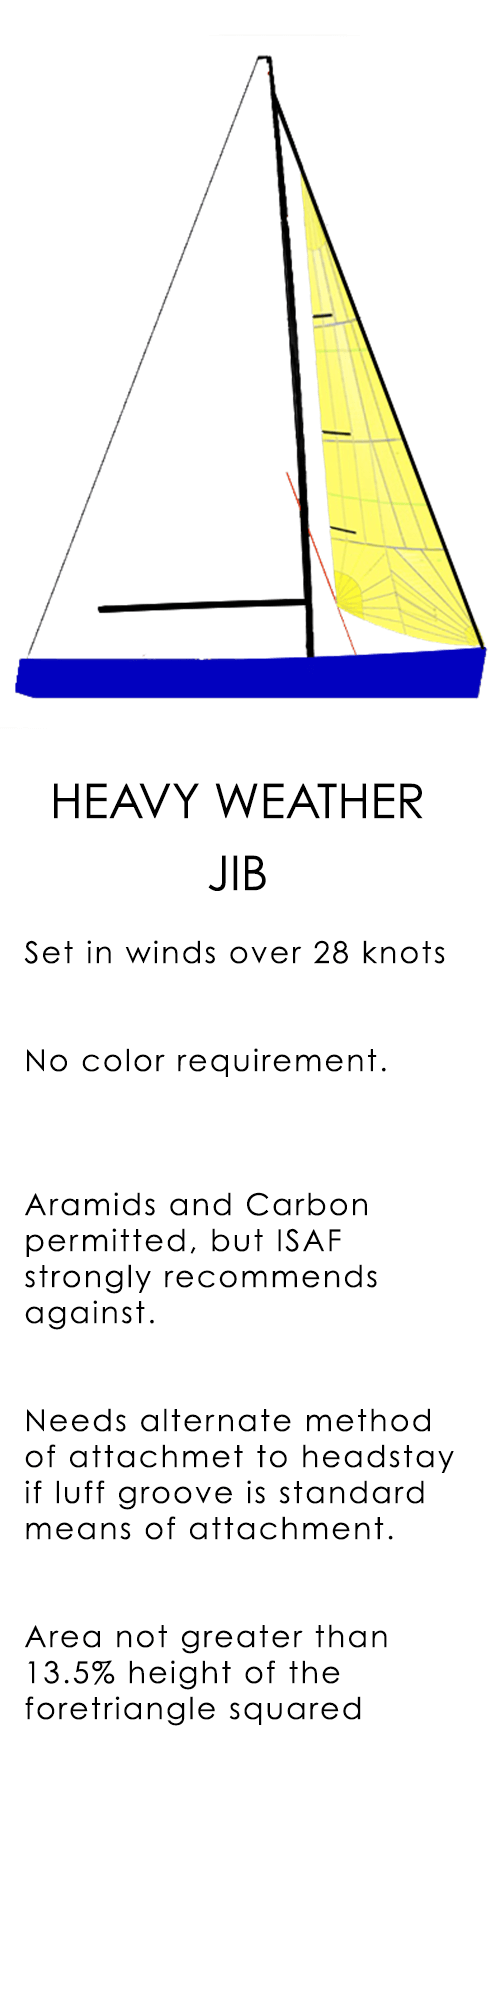 UK+Sailmakers+Heavy+Weather+Jib